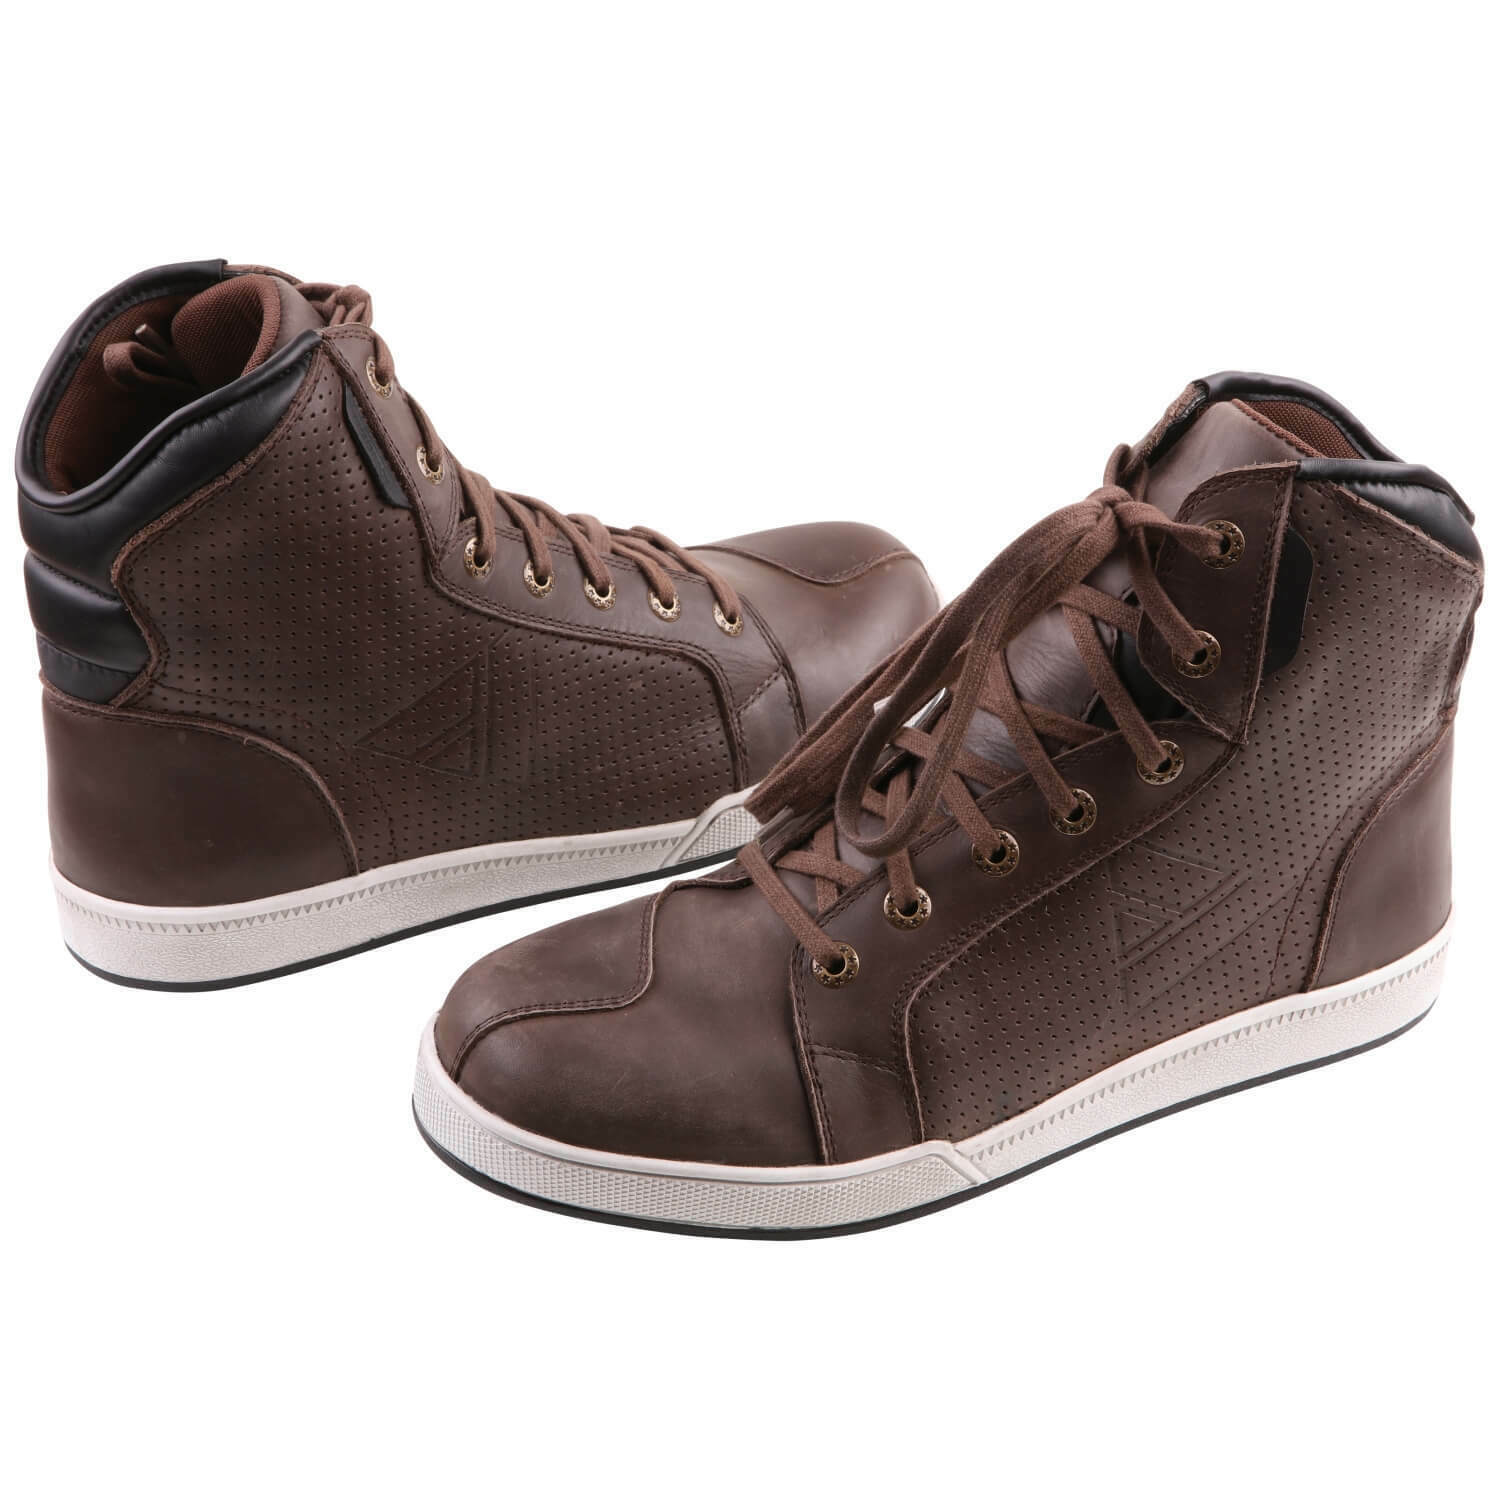 Modeka Midtown Men's Trainers Motorcycle Boots Leather - Braun